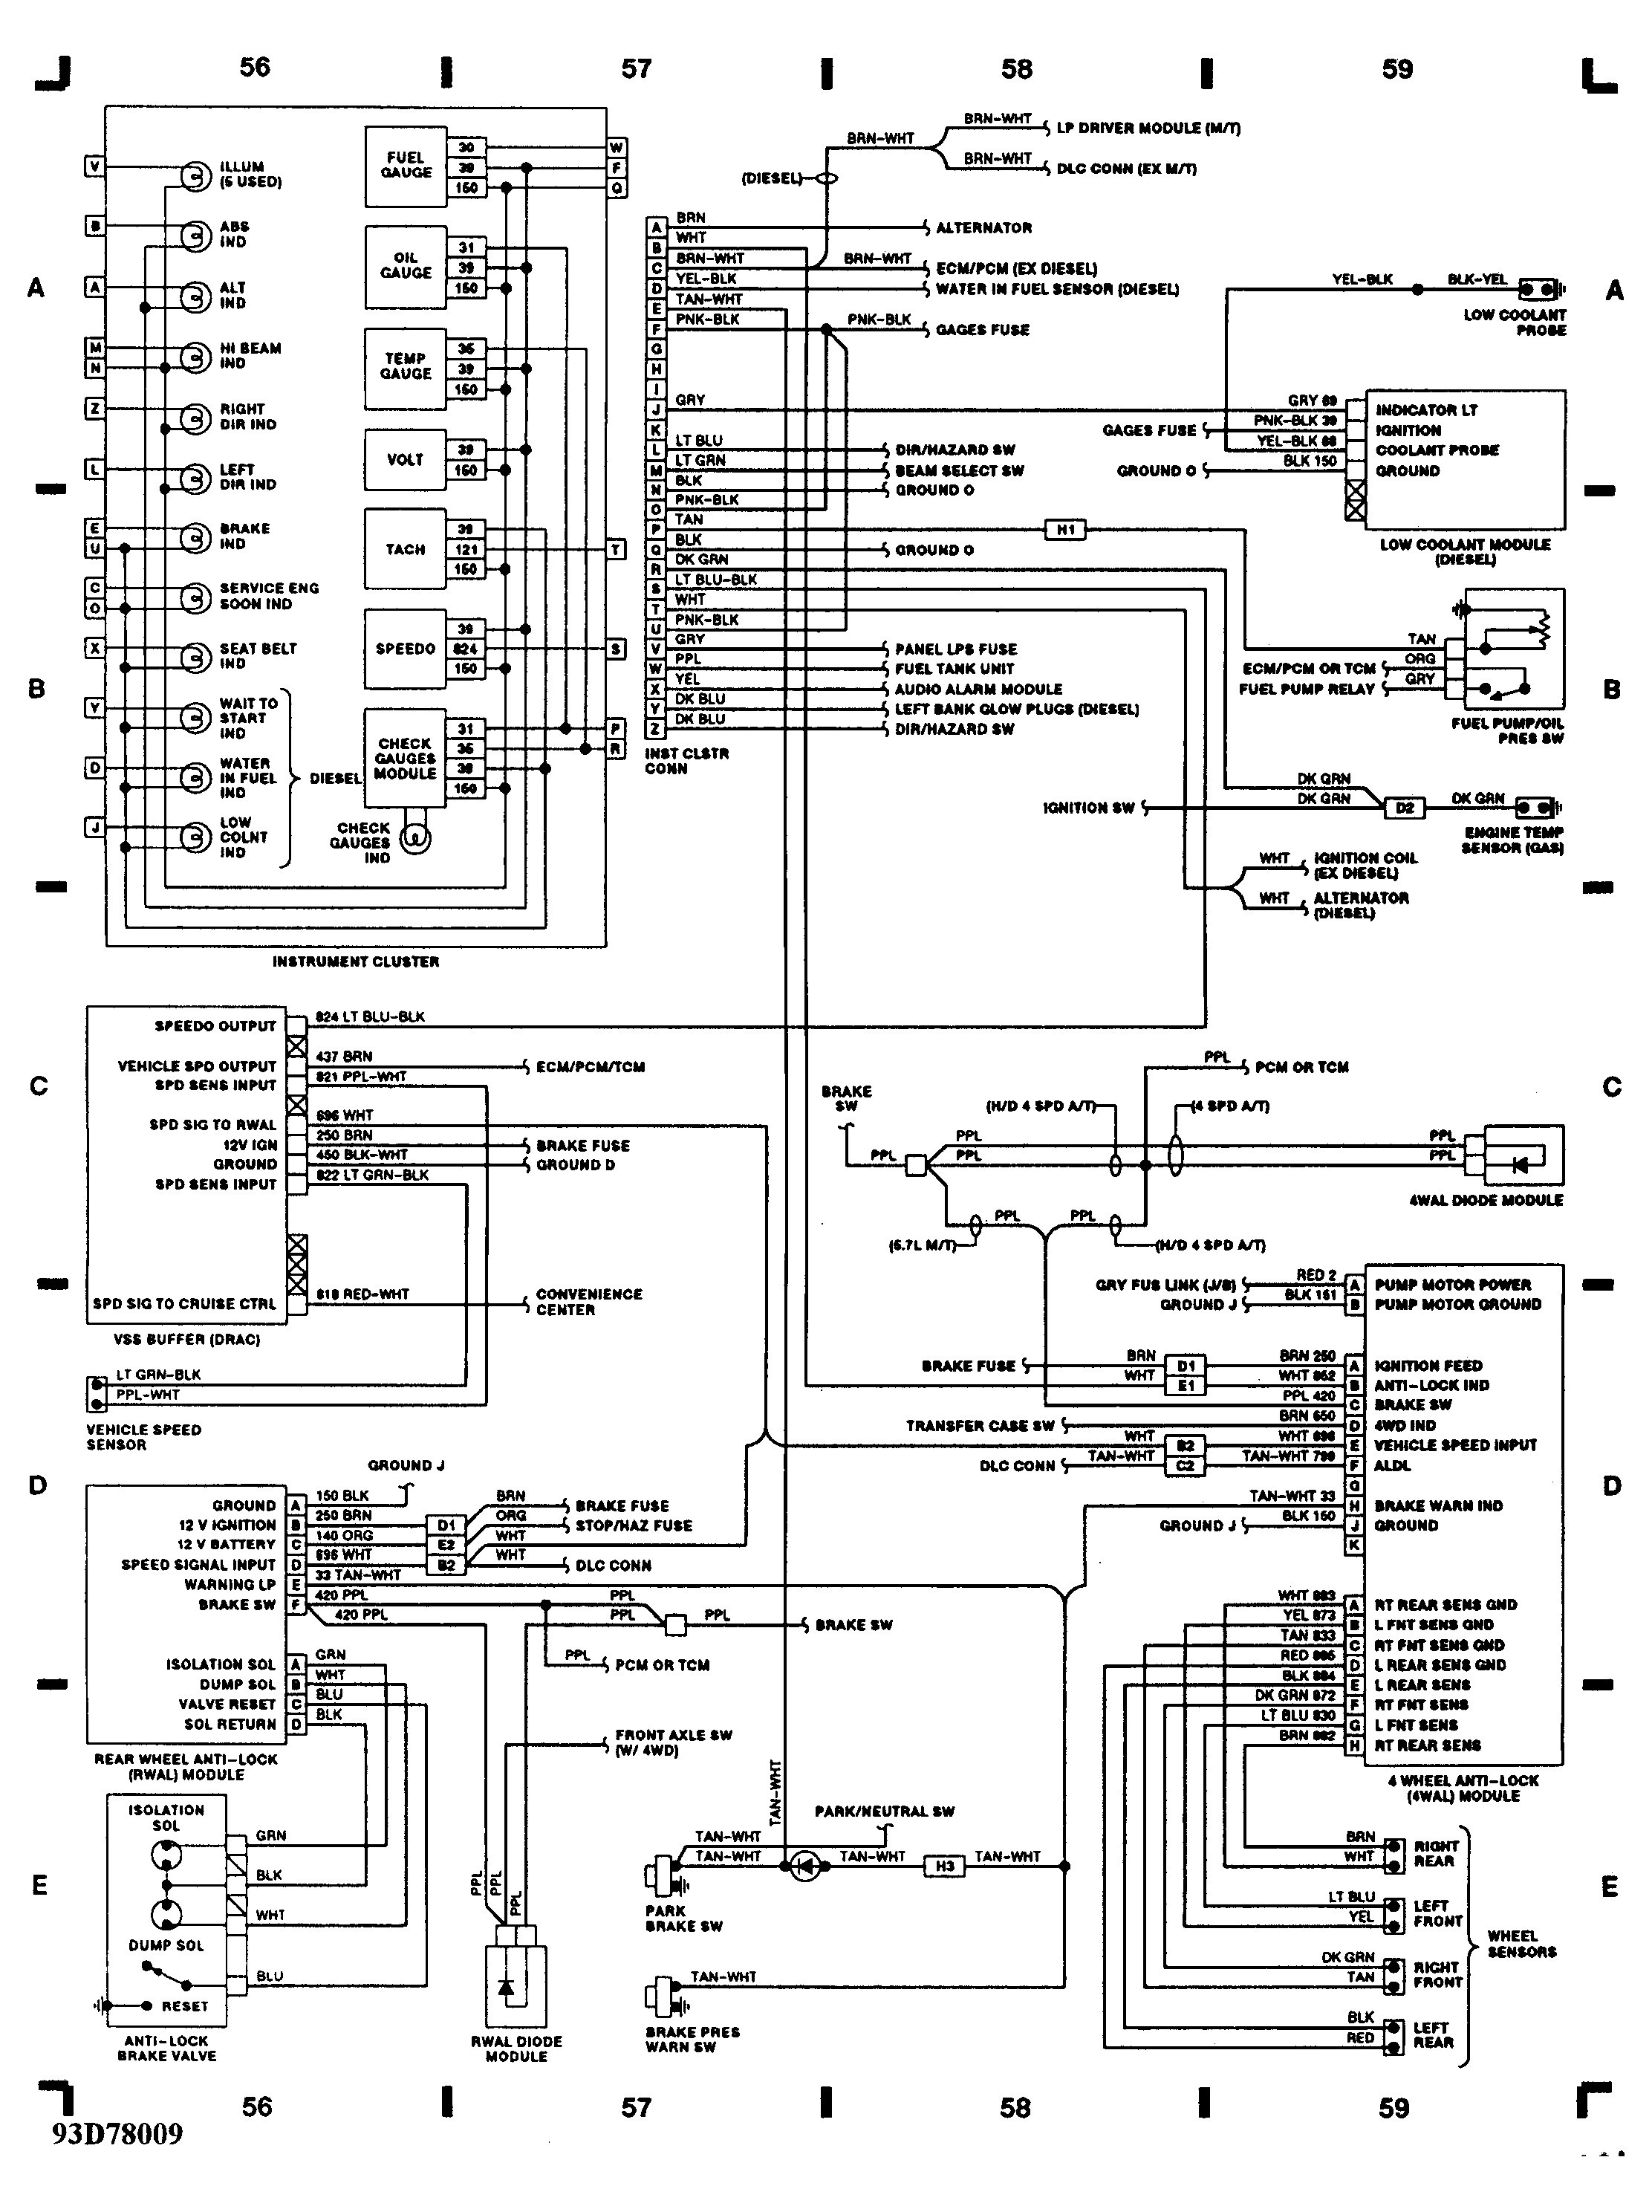 Wiring Circuits Diagram Moreover Jensen Interceptor Wiring